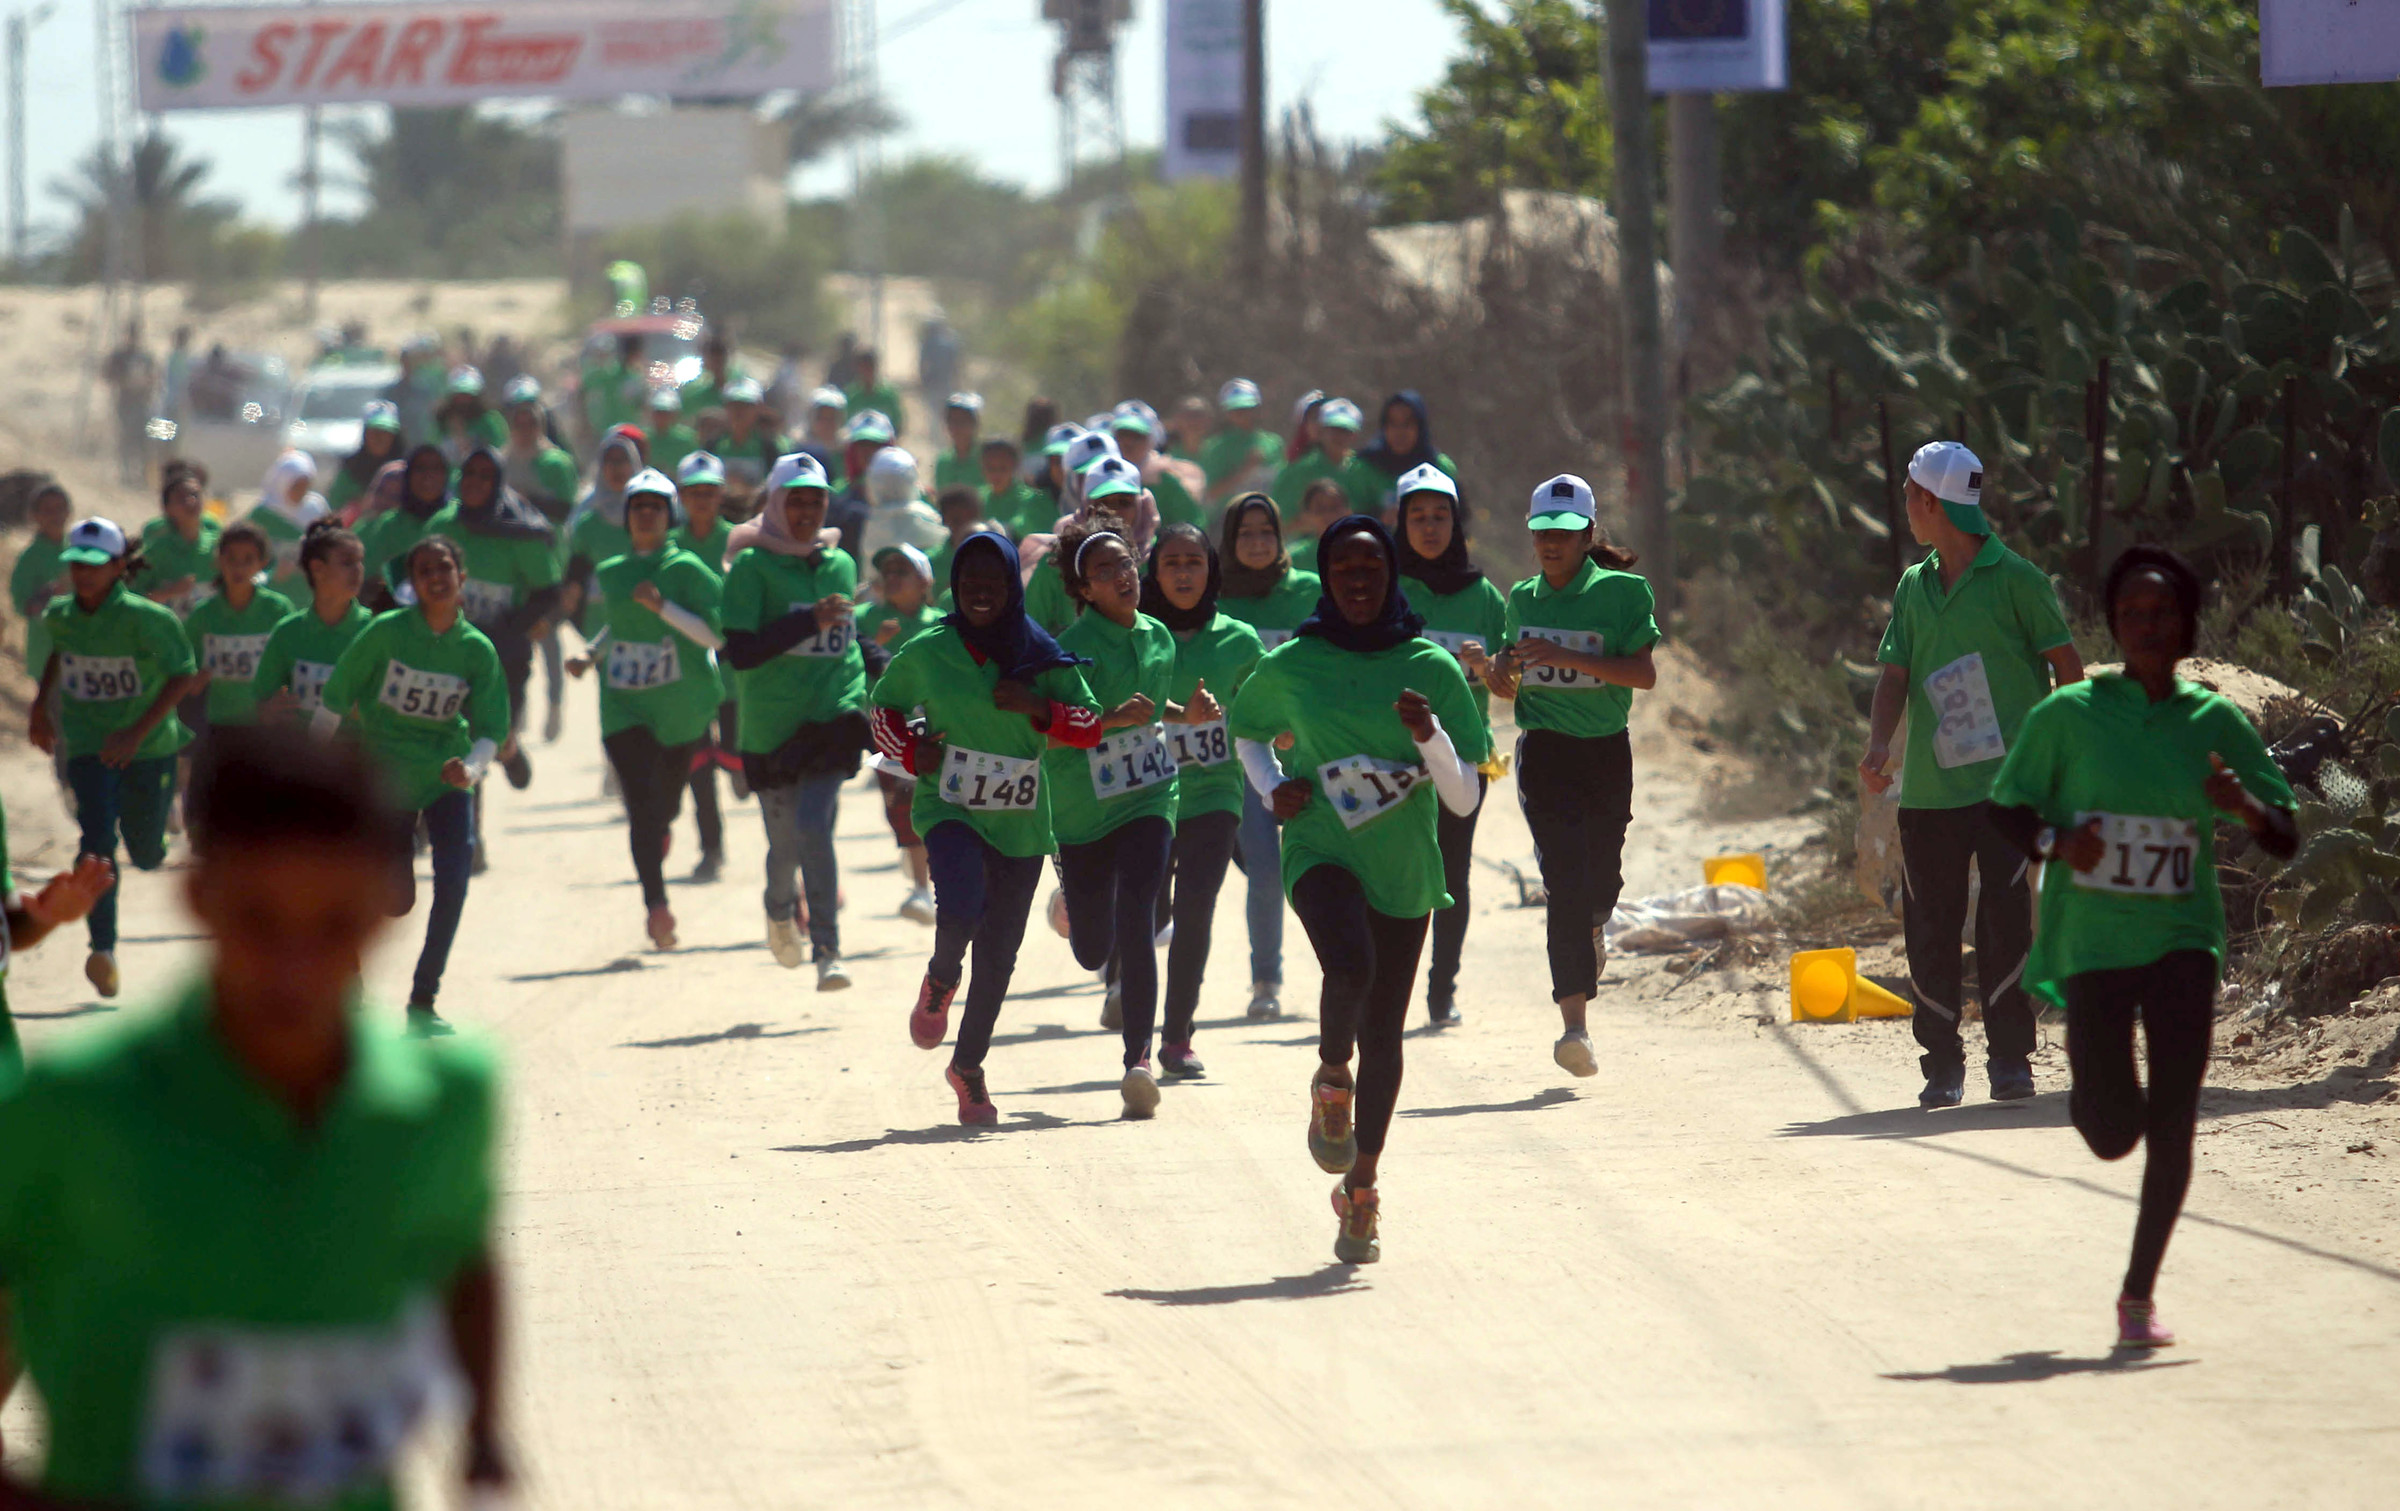 """Palestinians take part in the """"Running for Water Cross-country Run"""" in Rafah, southern Gaza Strip, on 26 September.  Mahmoud AjjourAPA images"""